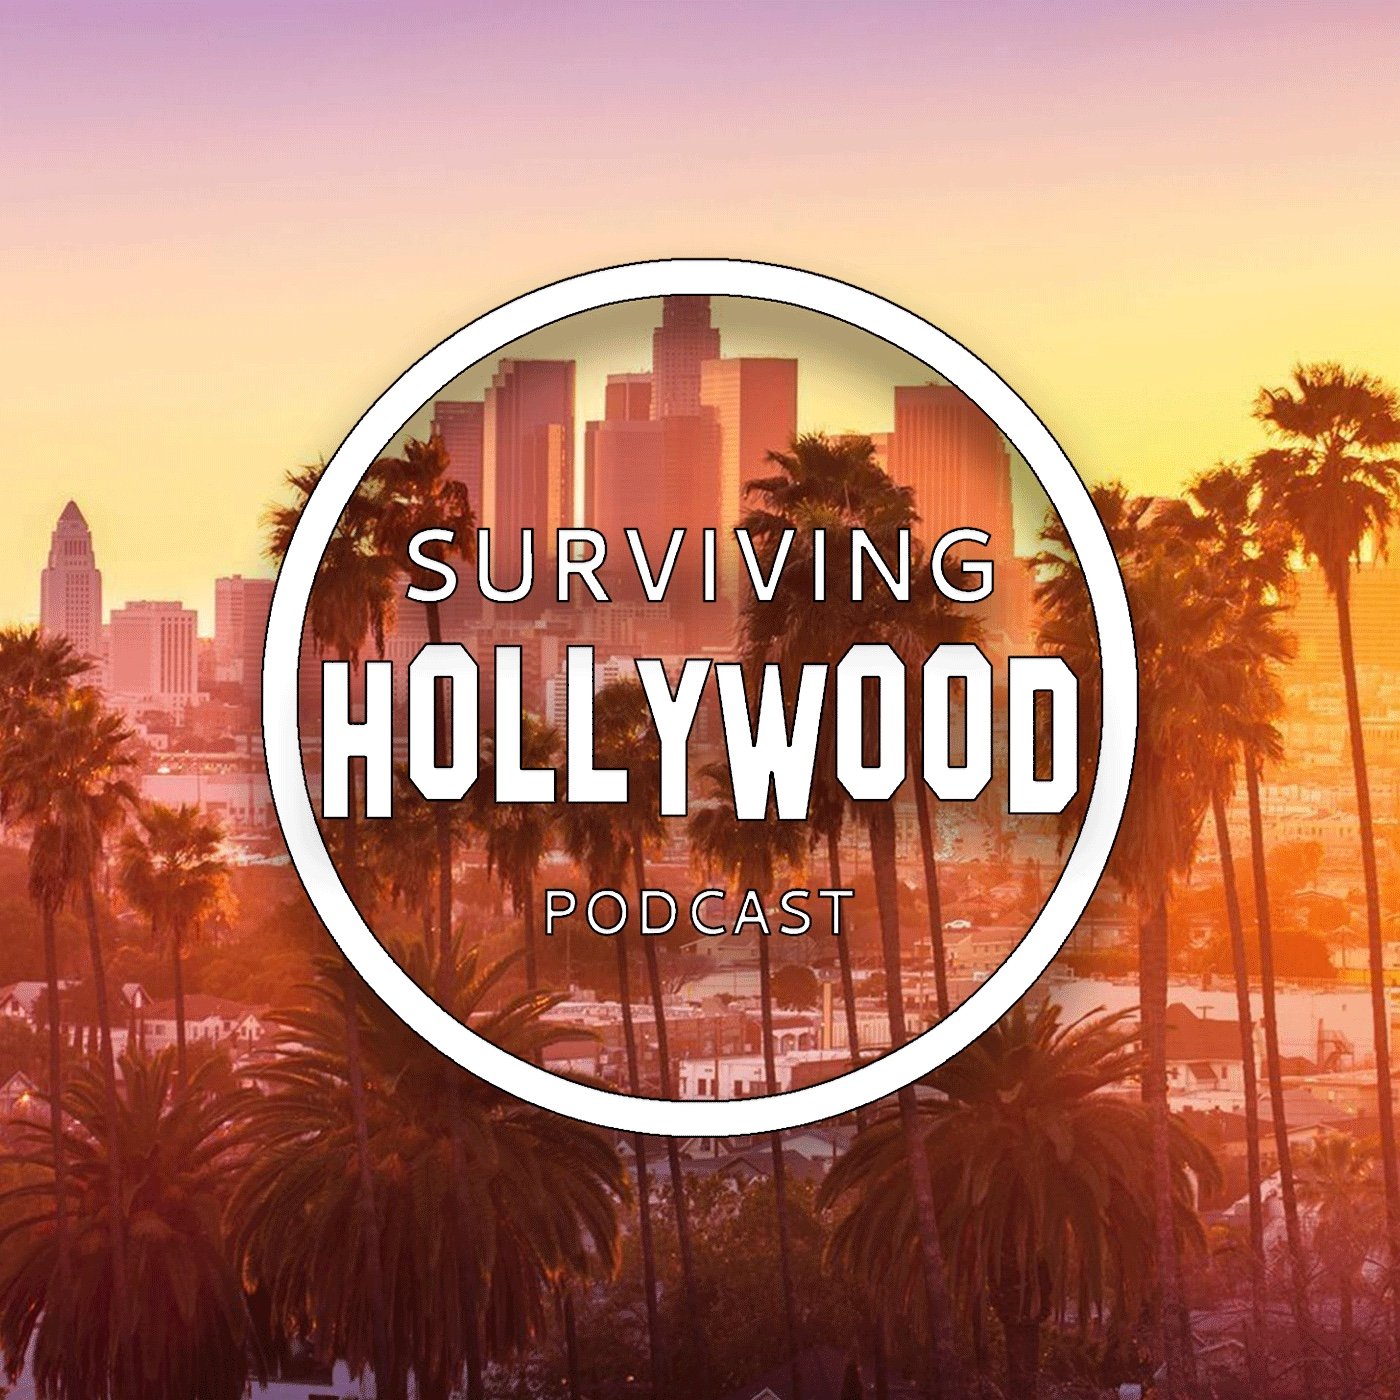 Surviving Hollywood Podcast: How To Get A Talent Manager